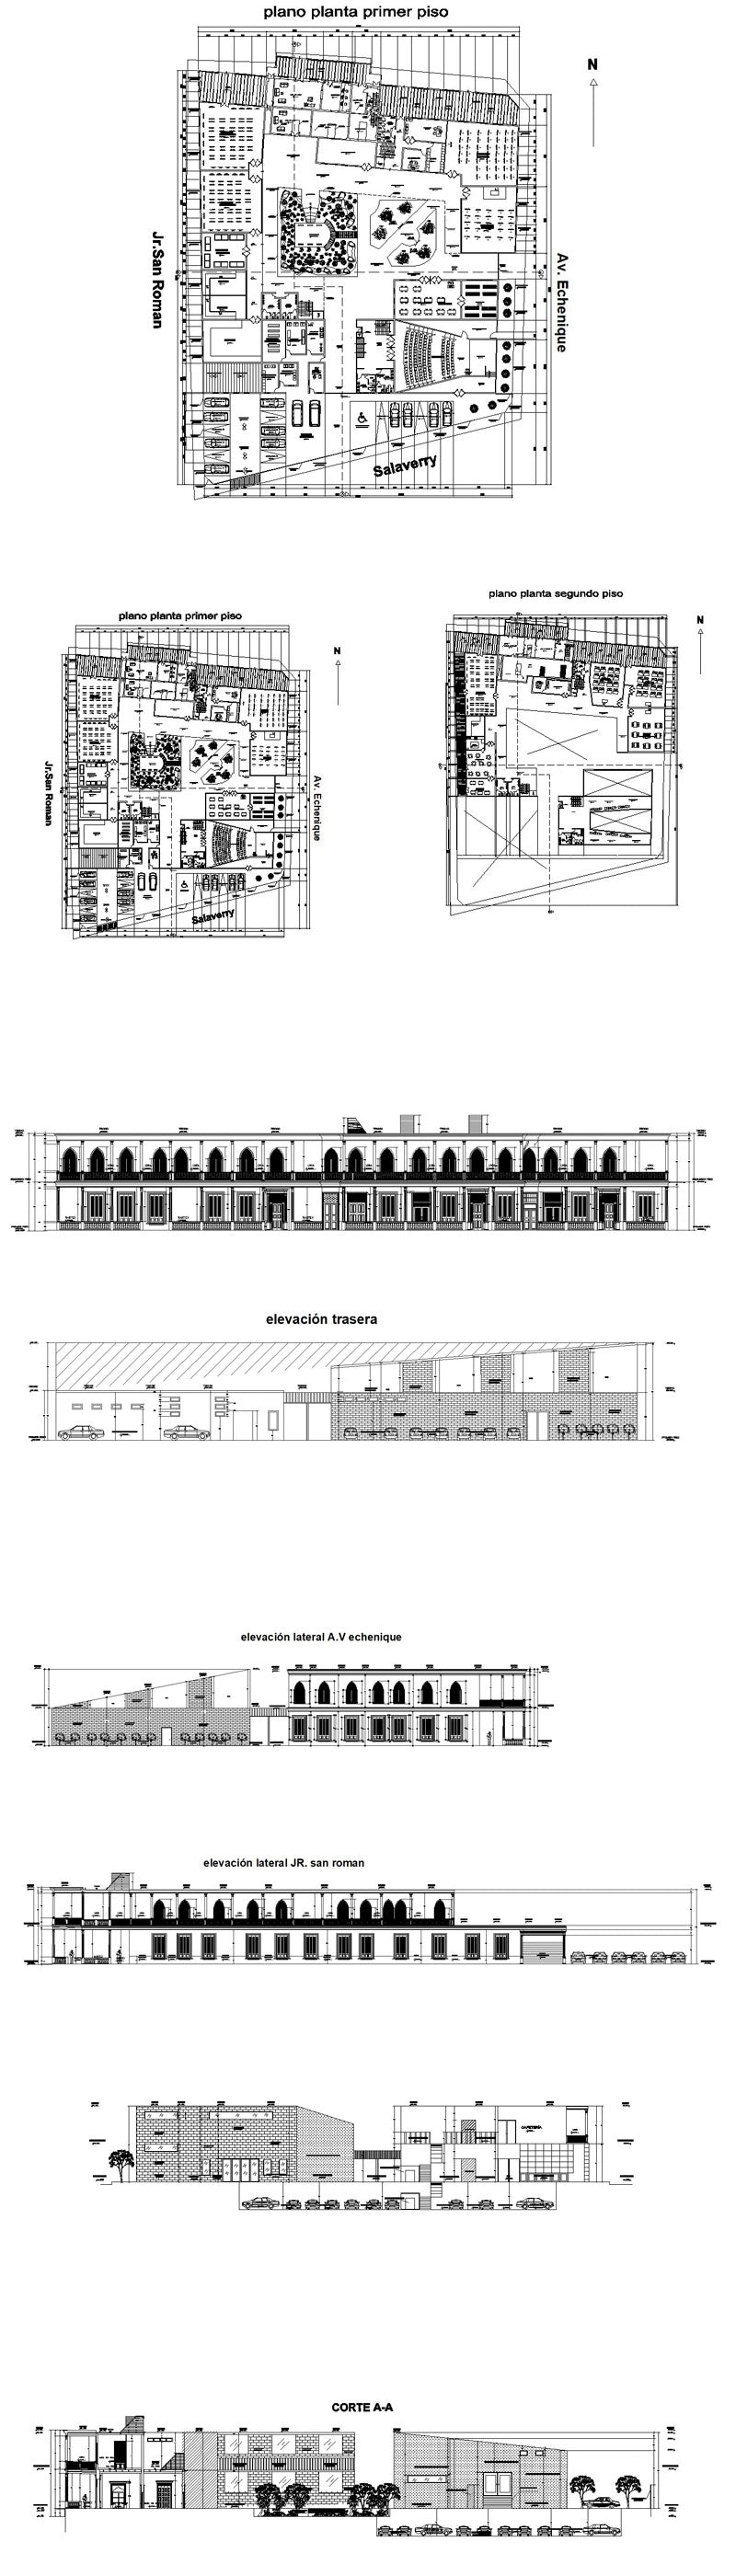 ★【School, University, College,Campus CAD Design Project V.5】@Autocad Blocks,Drawings,CAD Details,Elevation